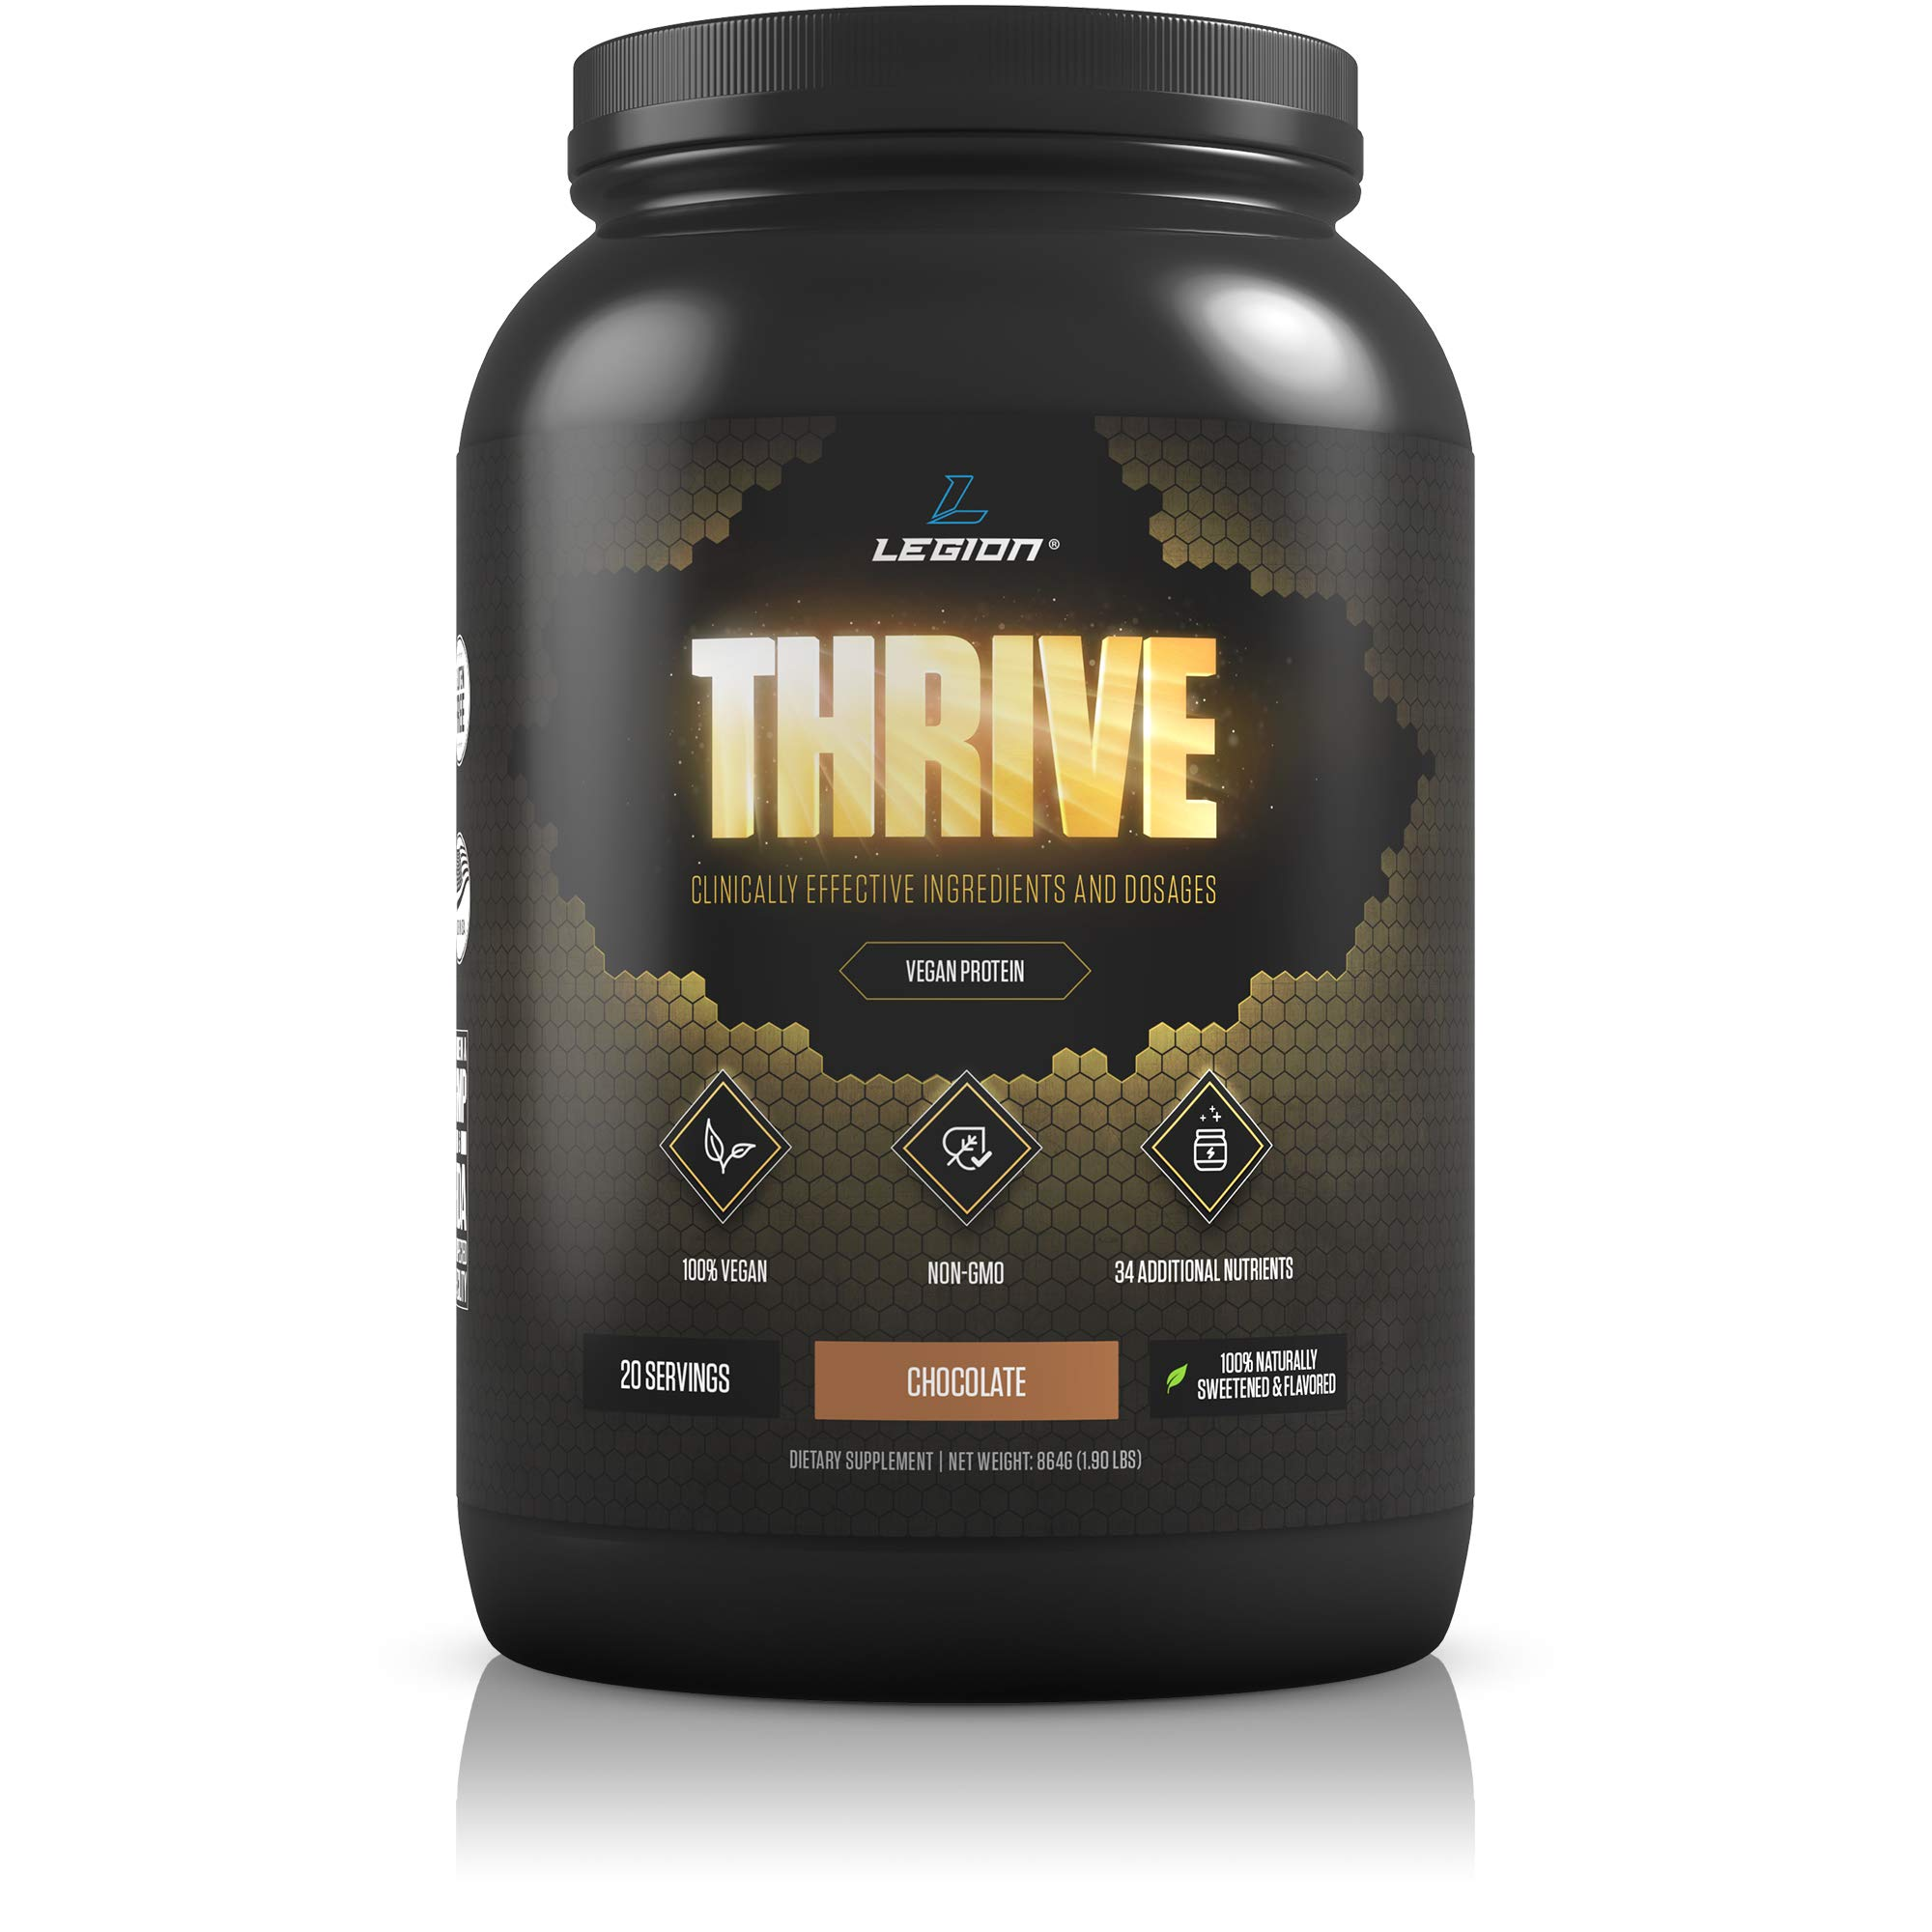 Legion Thrive Vegan Protein Powder, Chocolate - Rice and Pea, Plant Based Protein Blend. Gluten Free, GMO Free, Naturally Sweetened and Flavored, 20 Servings, 2 Lbs (Chocolate) by LEGION